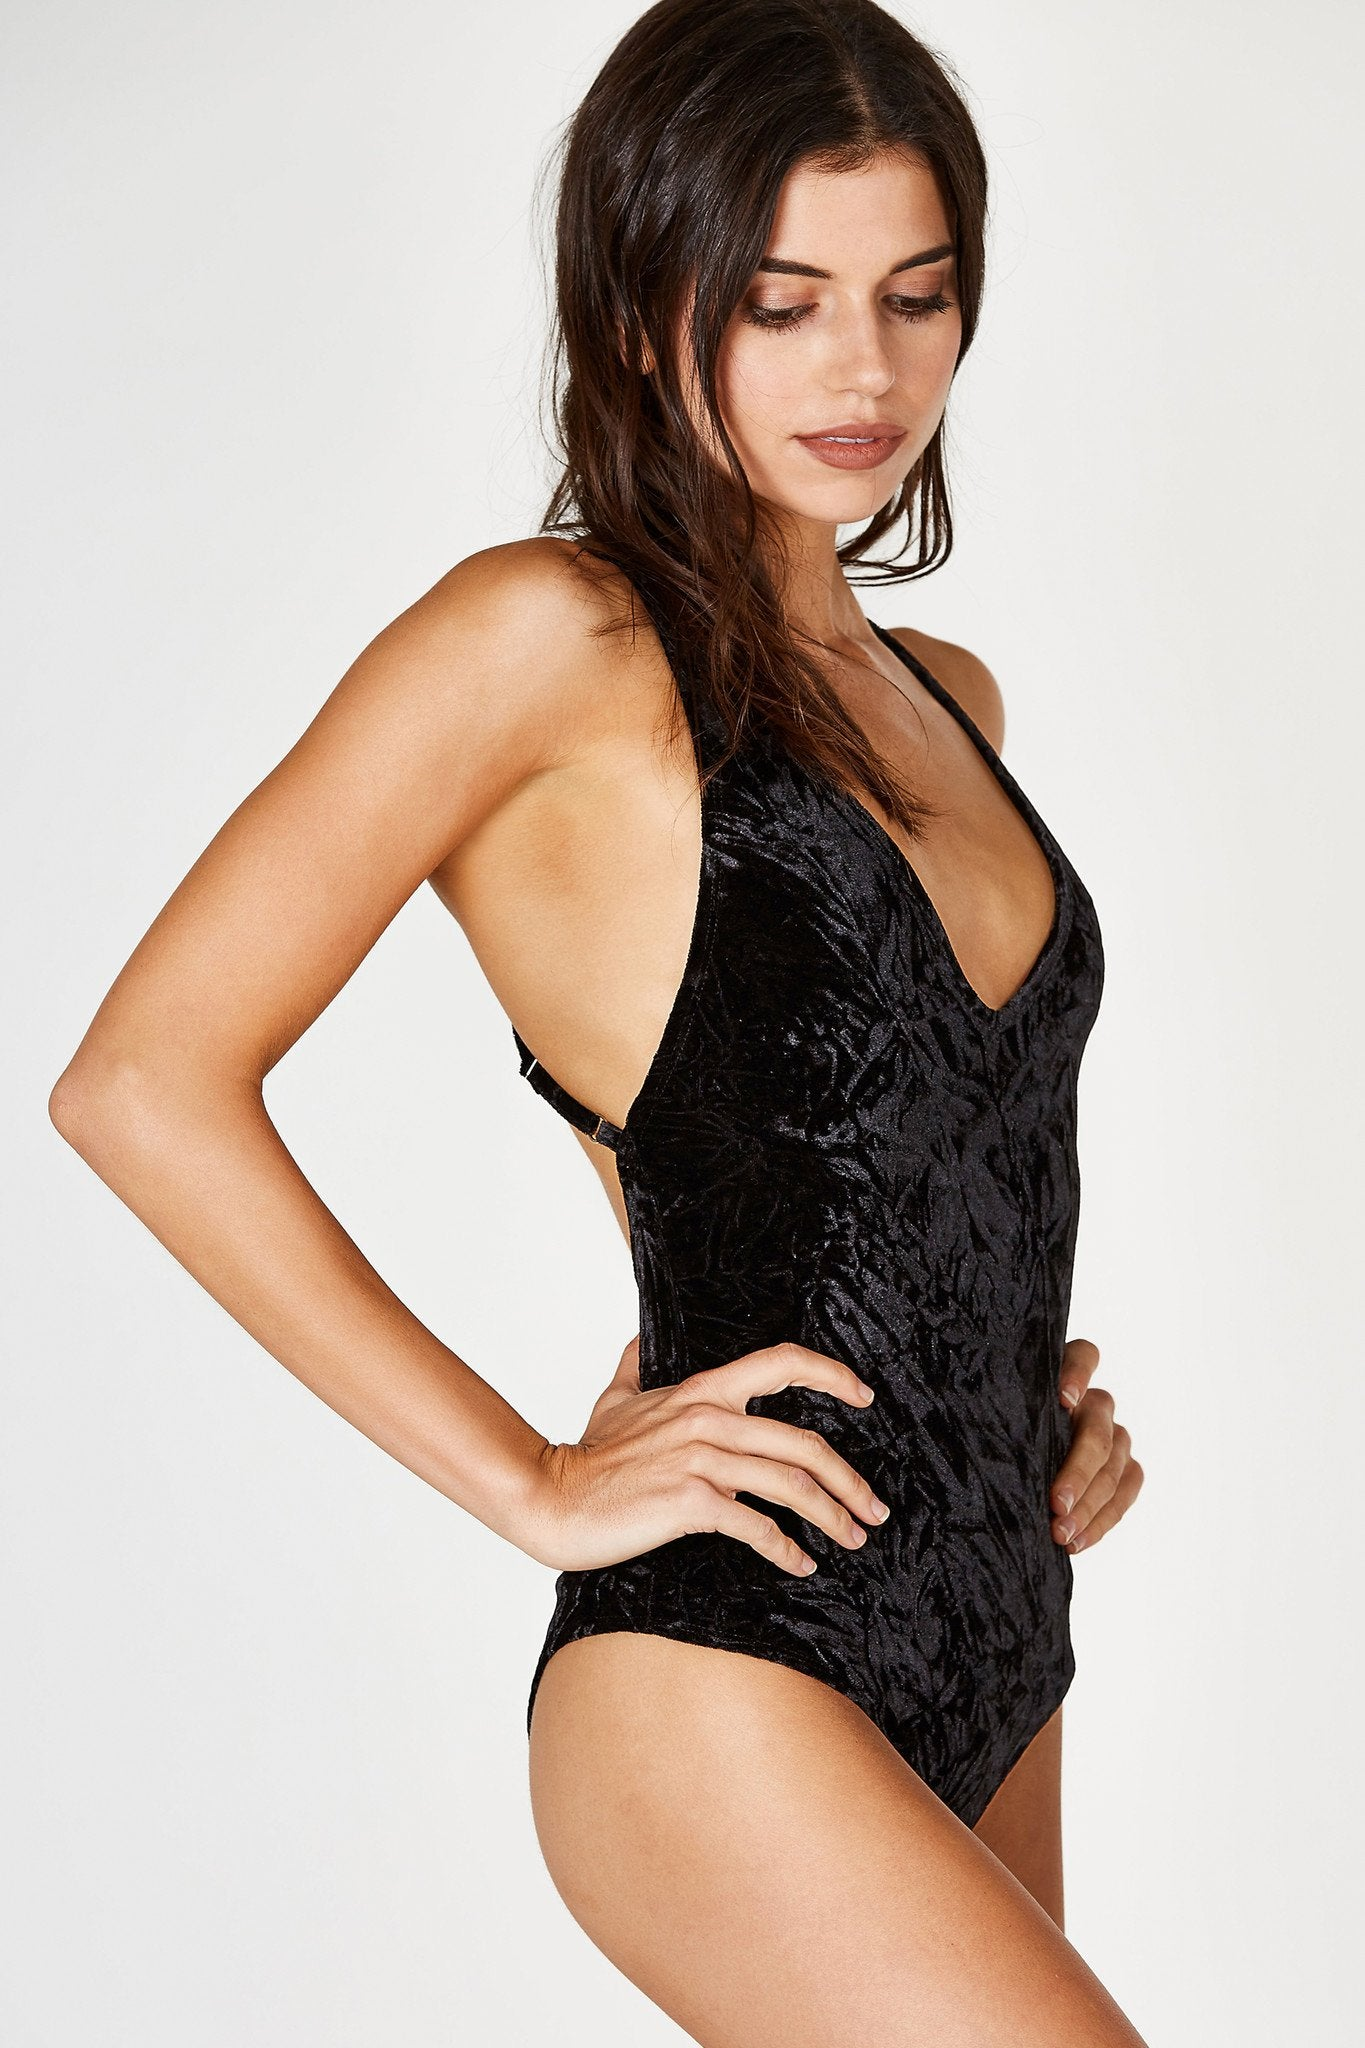 A stunning V-neck bodysuit with a gorgeous velvet finish. Slim fit with enough stretch for comfort. Open back with adjustable shoulder straps that criss crosses for a seductive vibe. Cheeky cut with snap on buttons for closure at bottom. A great going out piece for Summer nights.